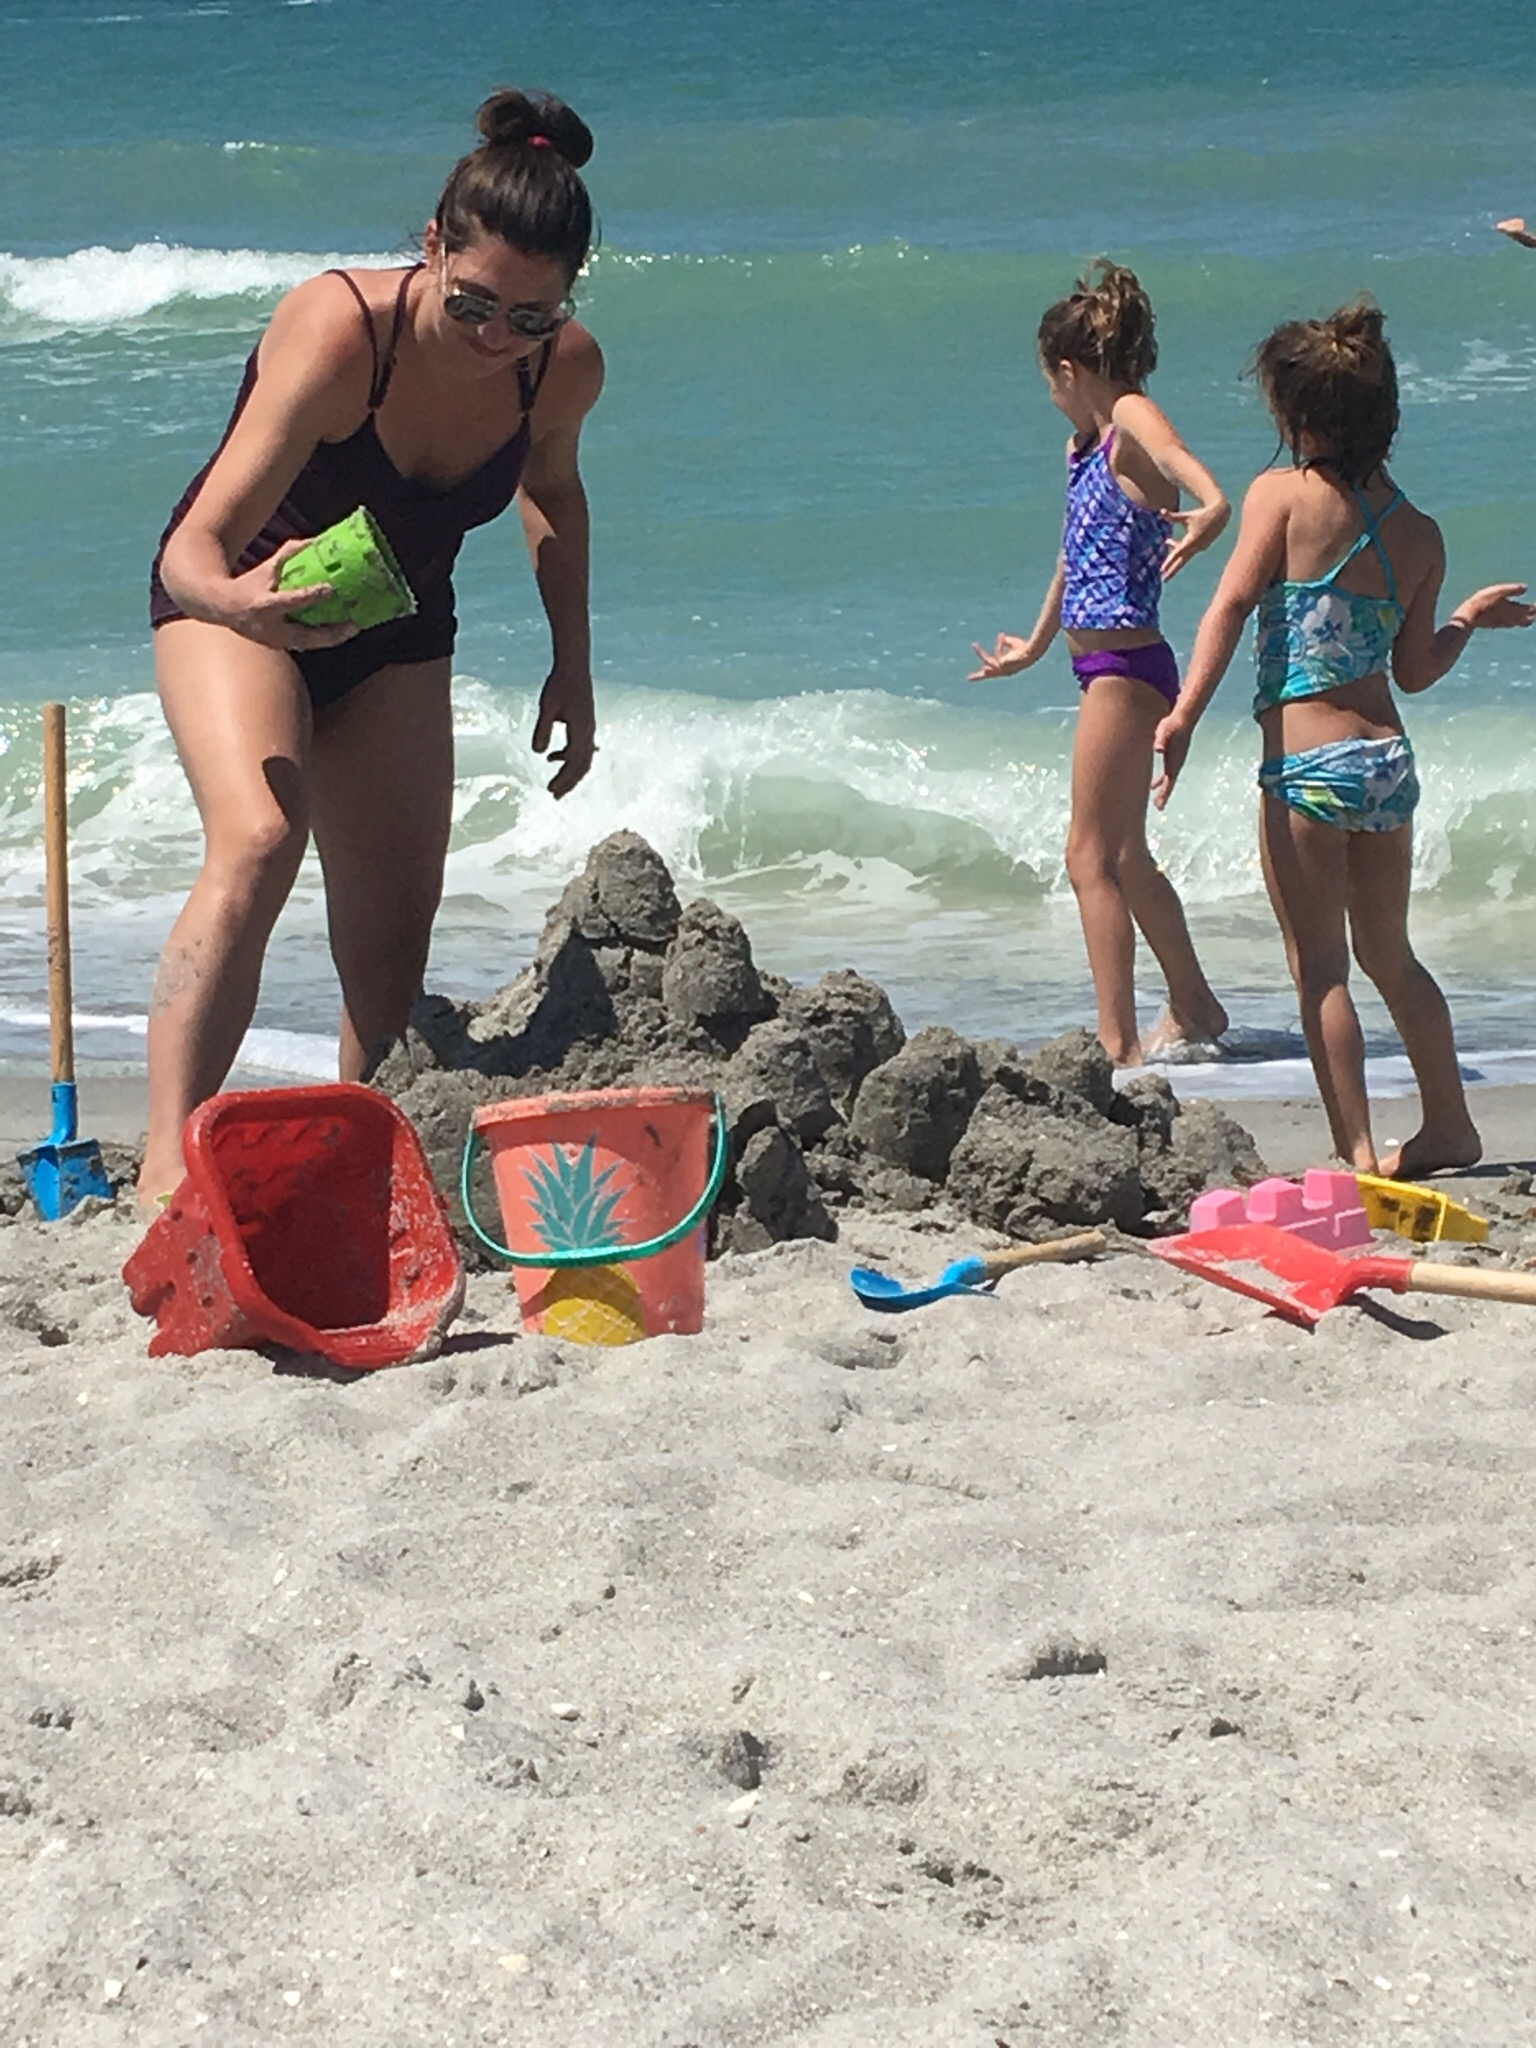 Here's a pic of me making what very well might be my first sandcastle ever. (Just a side note but I've also found that I'm much more creative now that I've quit drinking. We have this misconception that using substances fuels creativity but you know what really does it? A clear head!)